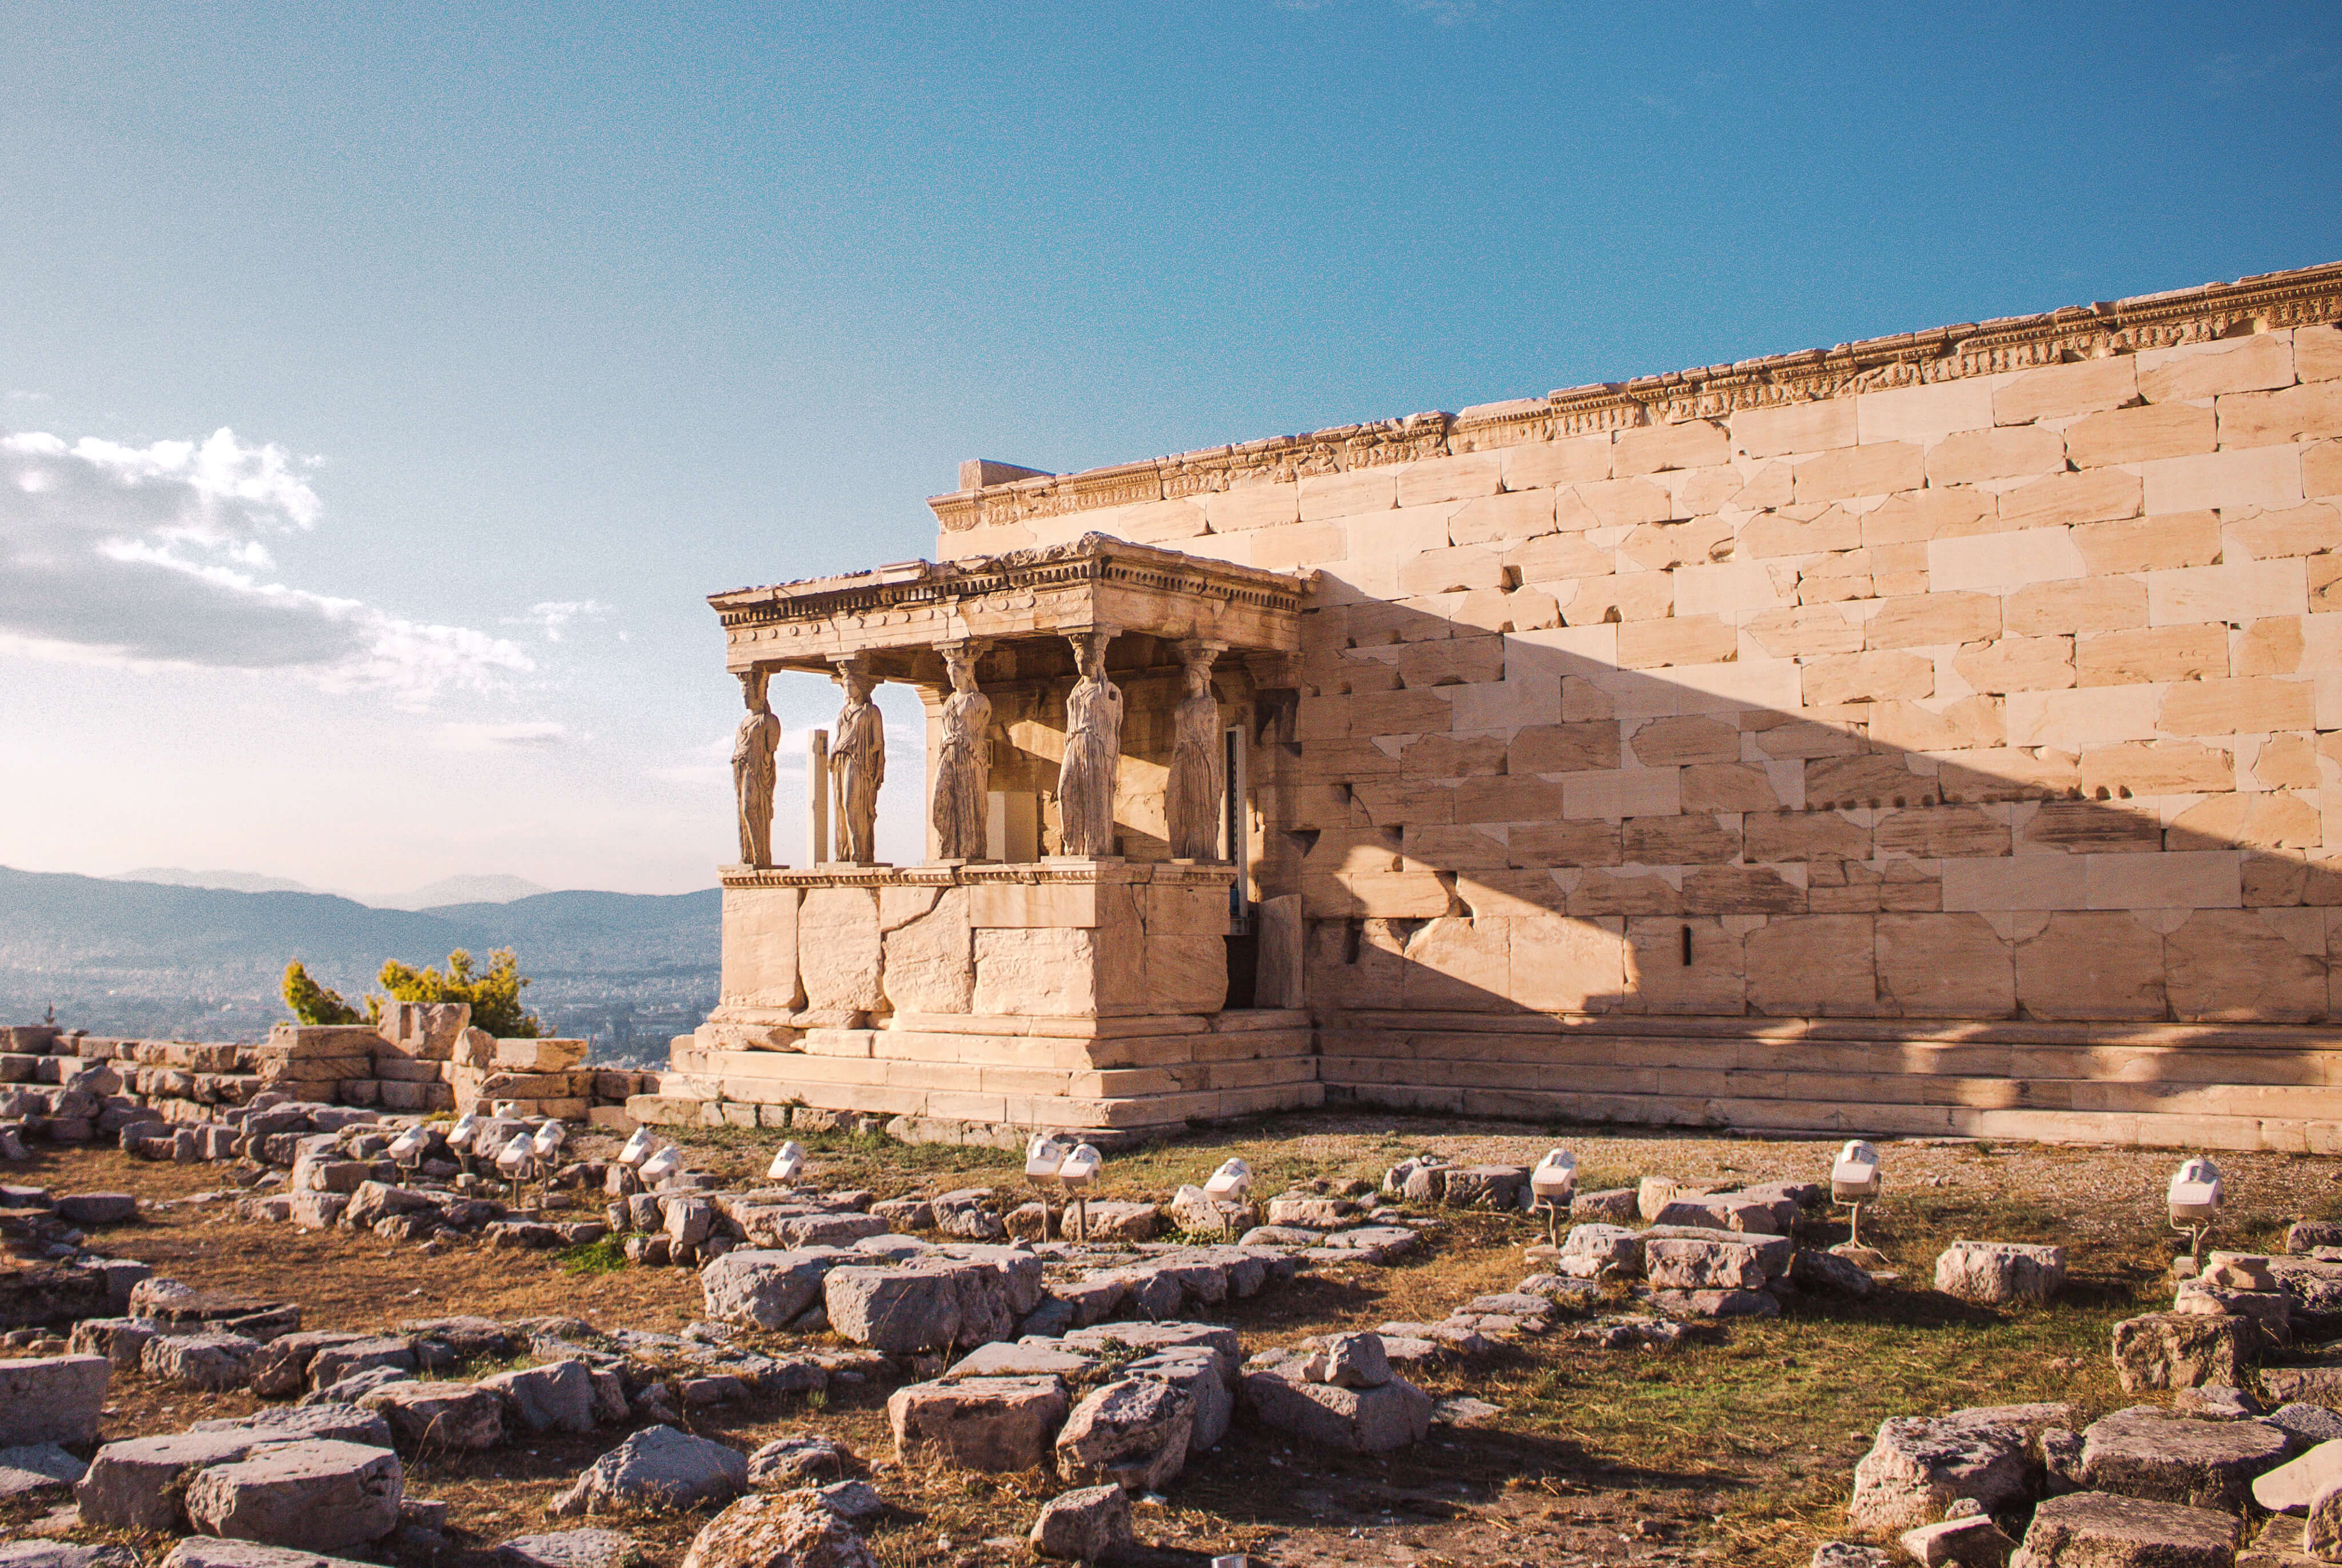 View of the stone Erechtheion at the Acropolis in Athens, Greece, on a sunny day